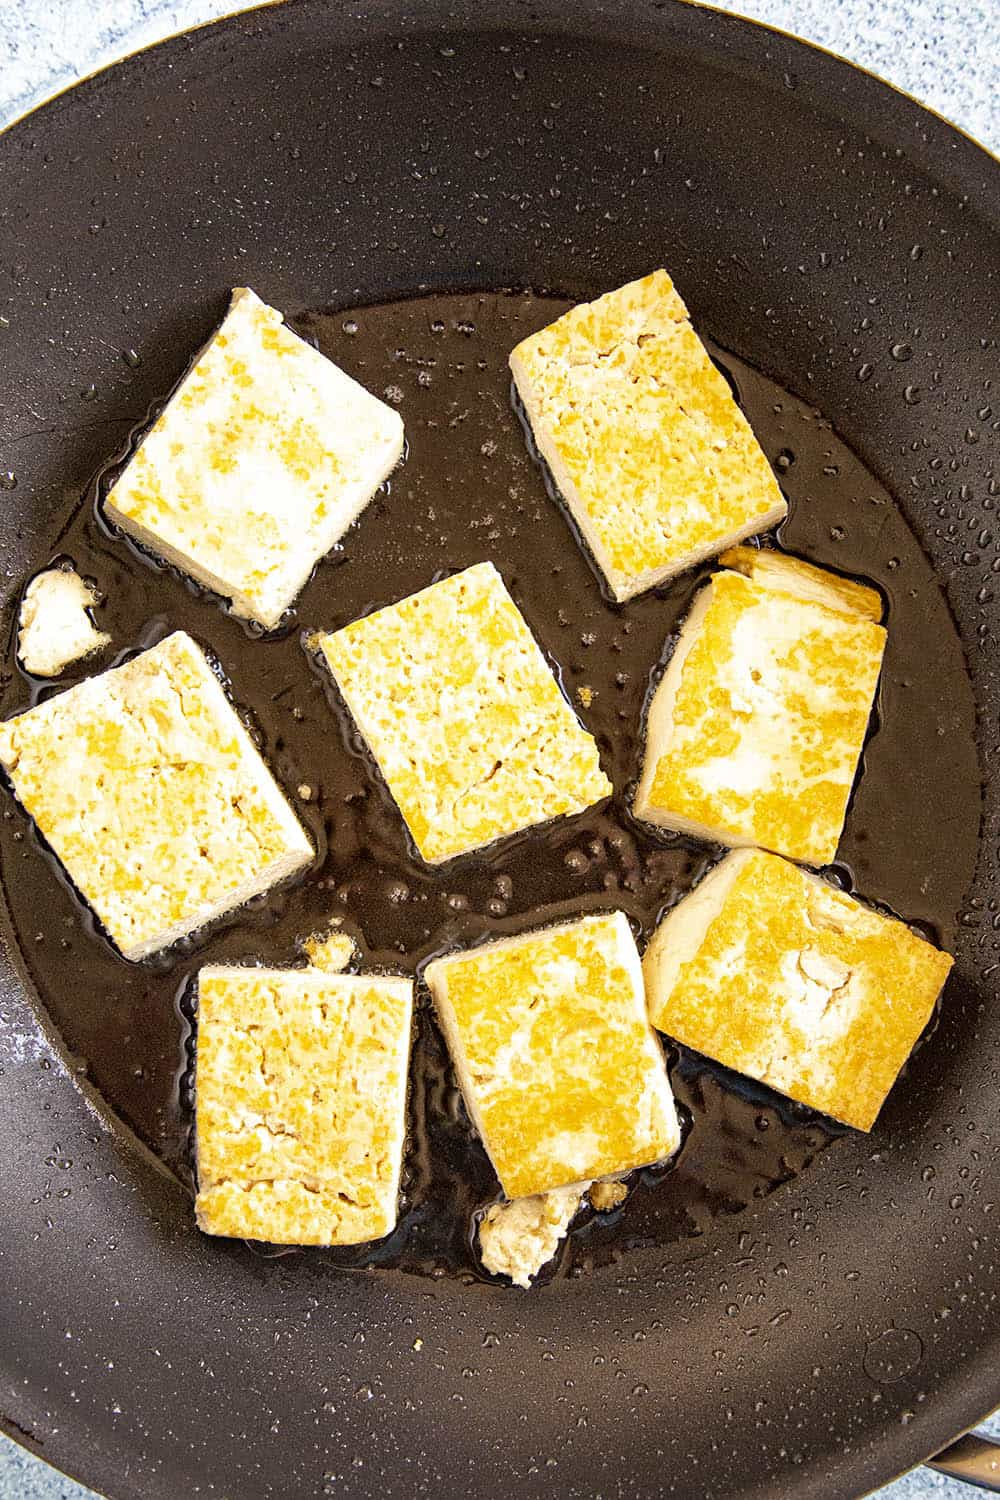 Frying blocks of tofu for making sofritas